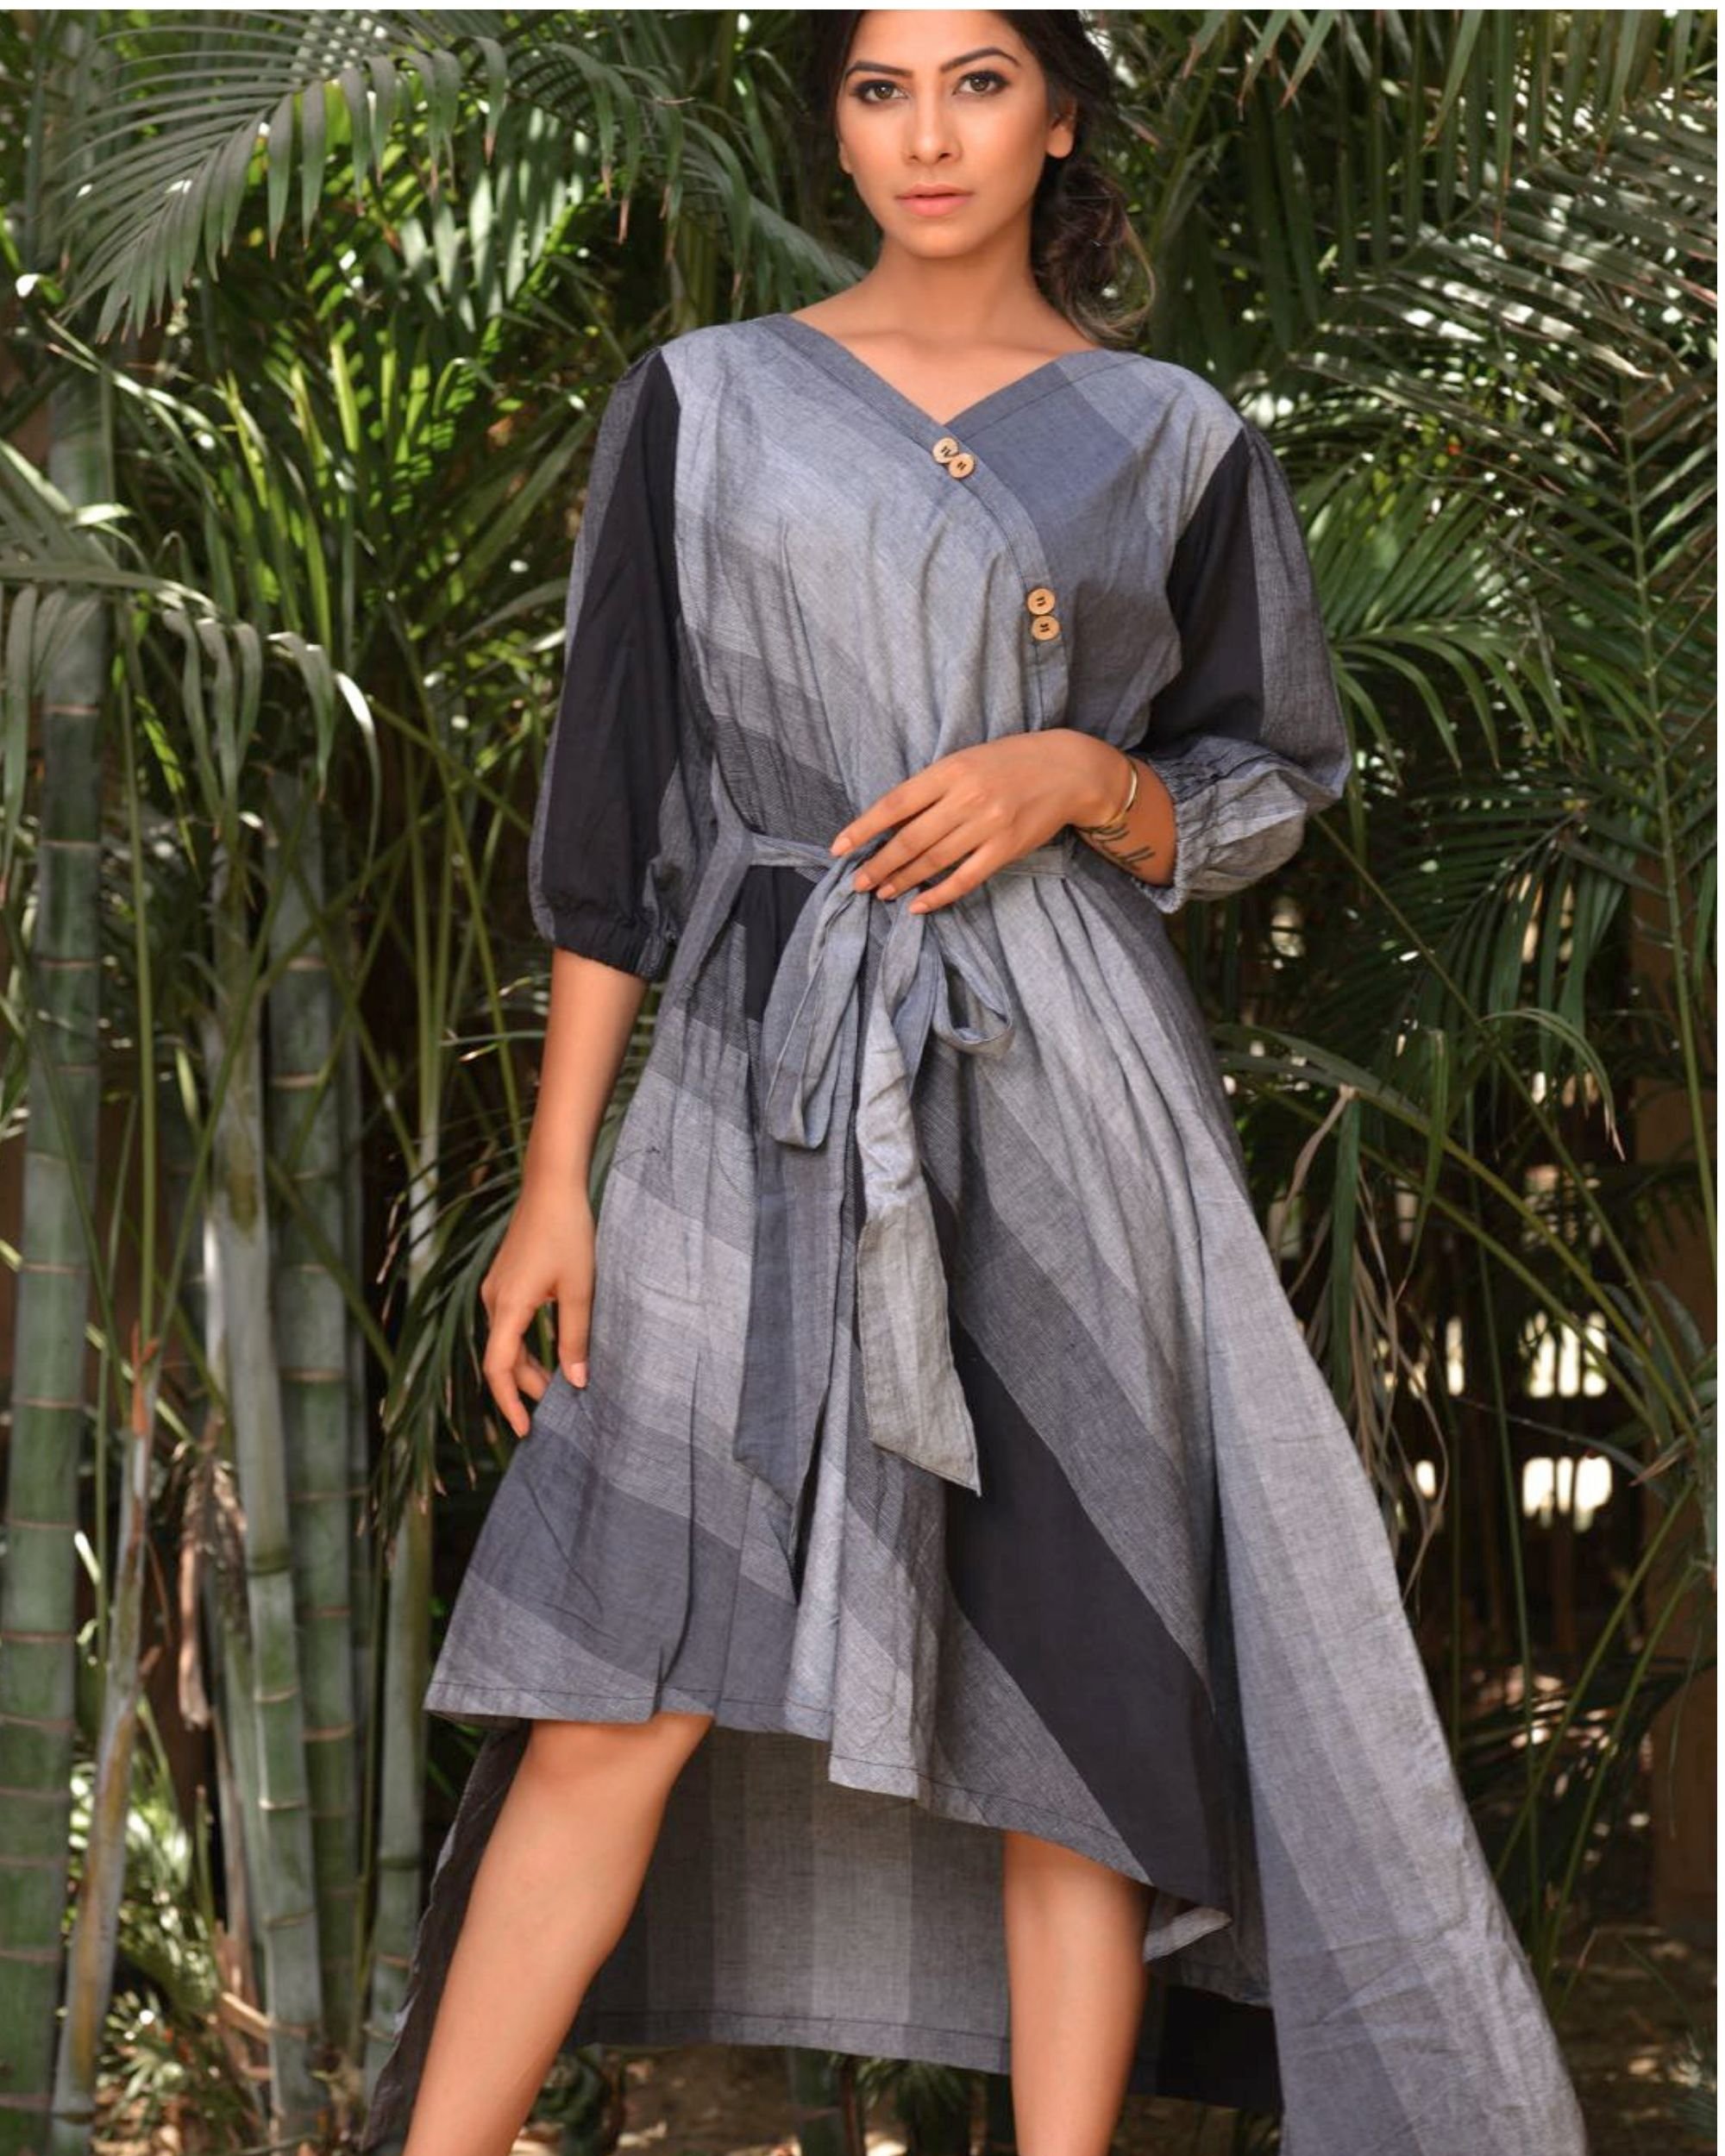 The black and grey asymmetrical knot dress